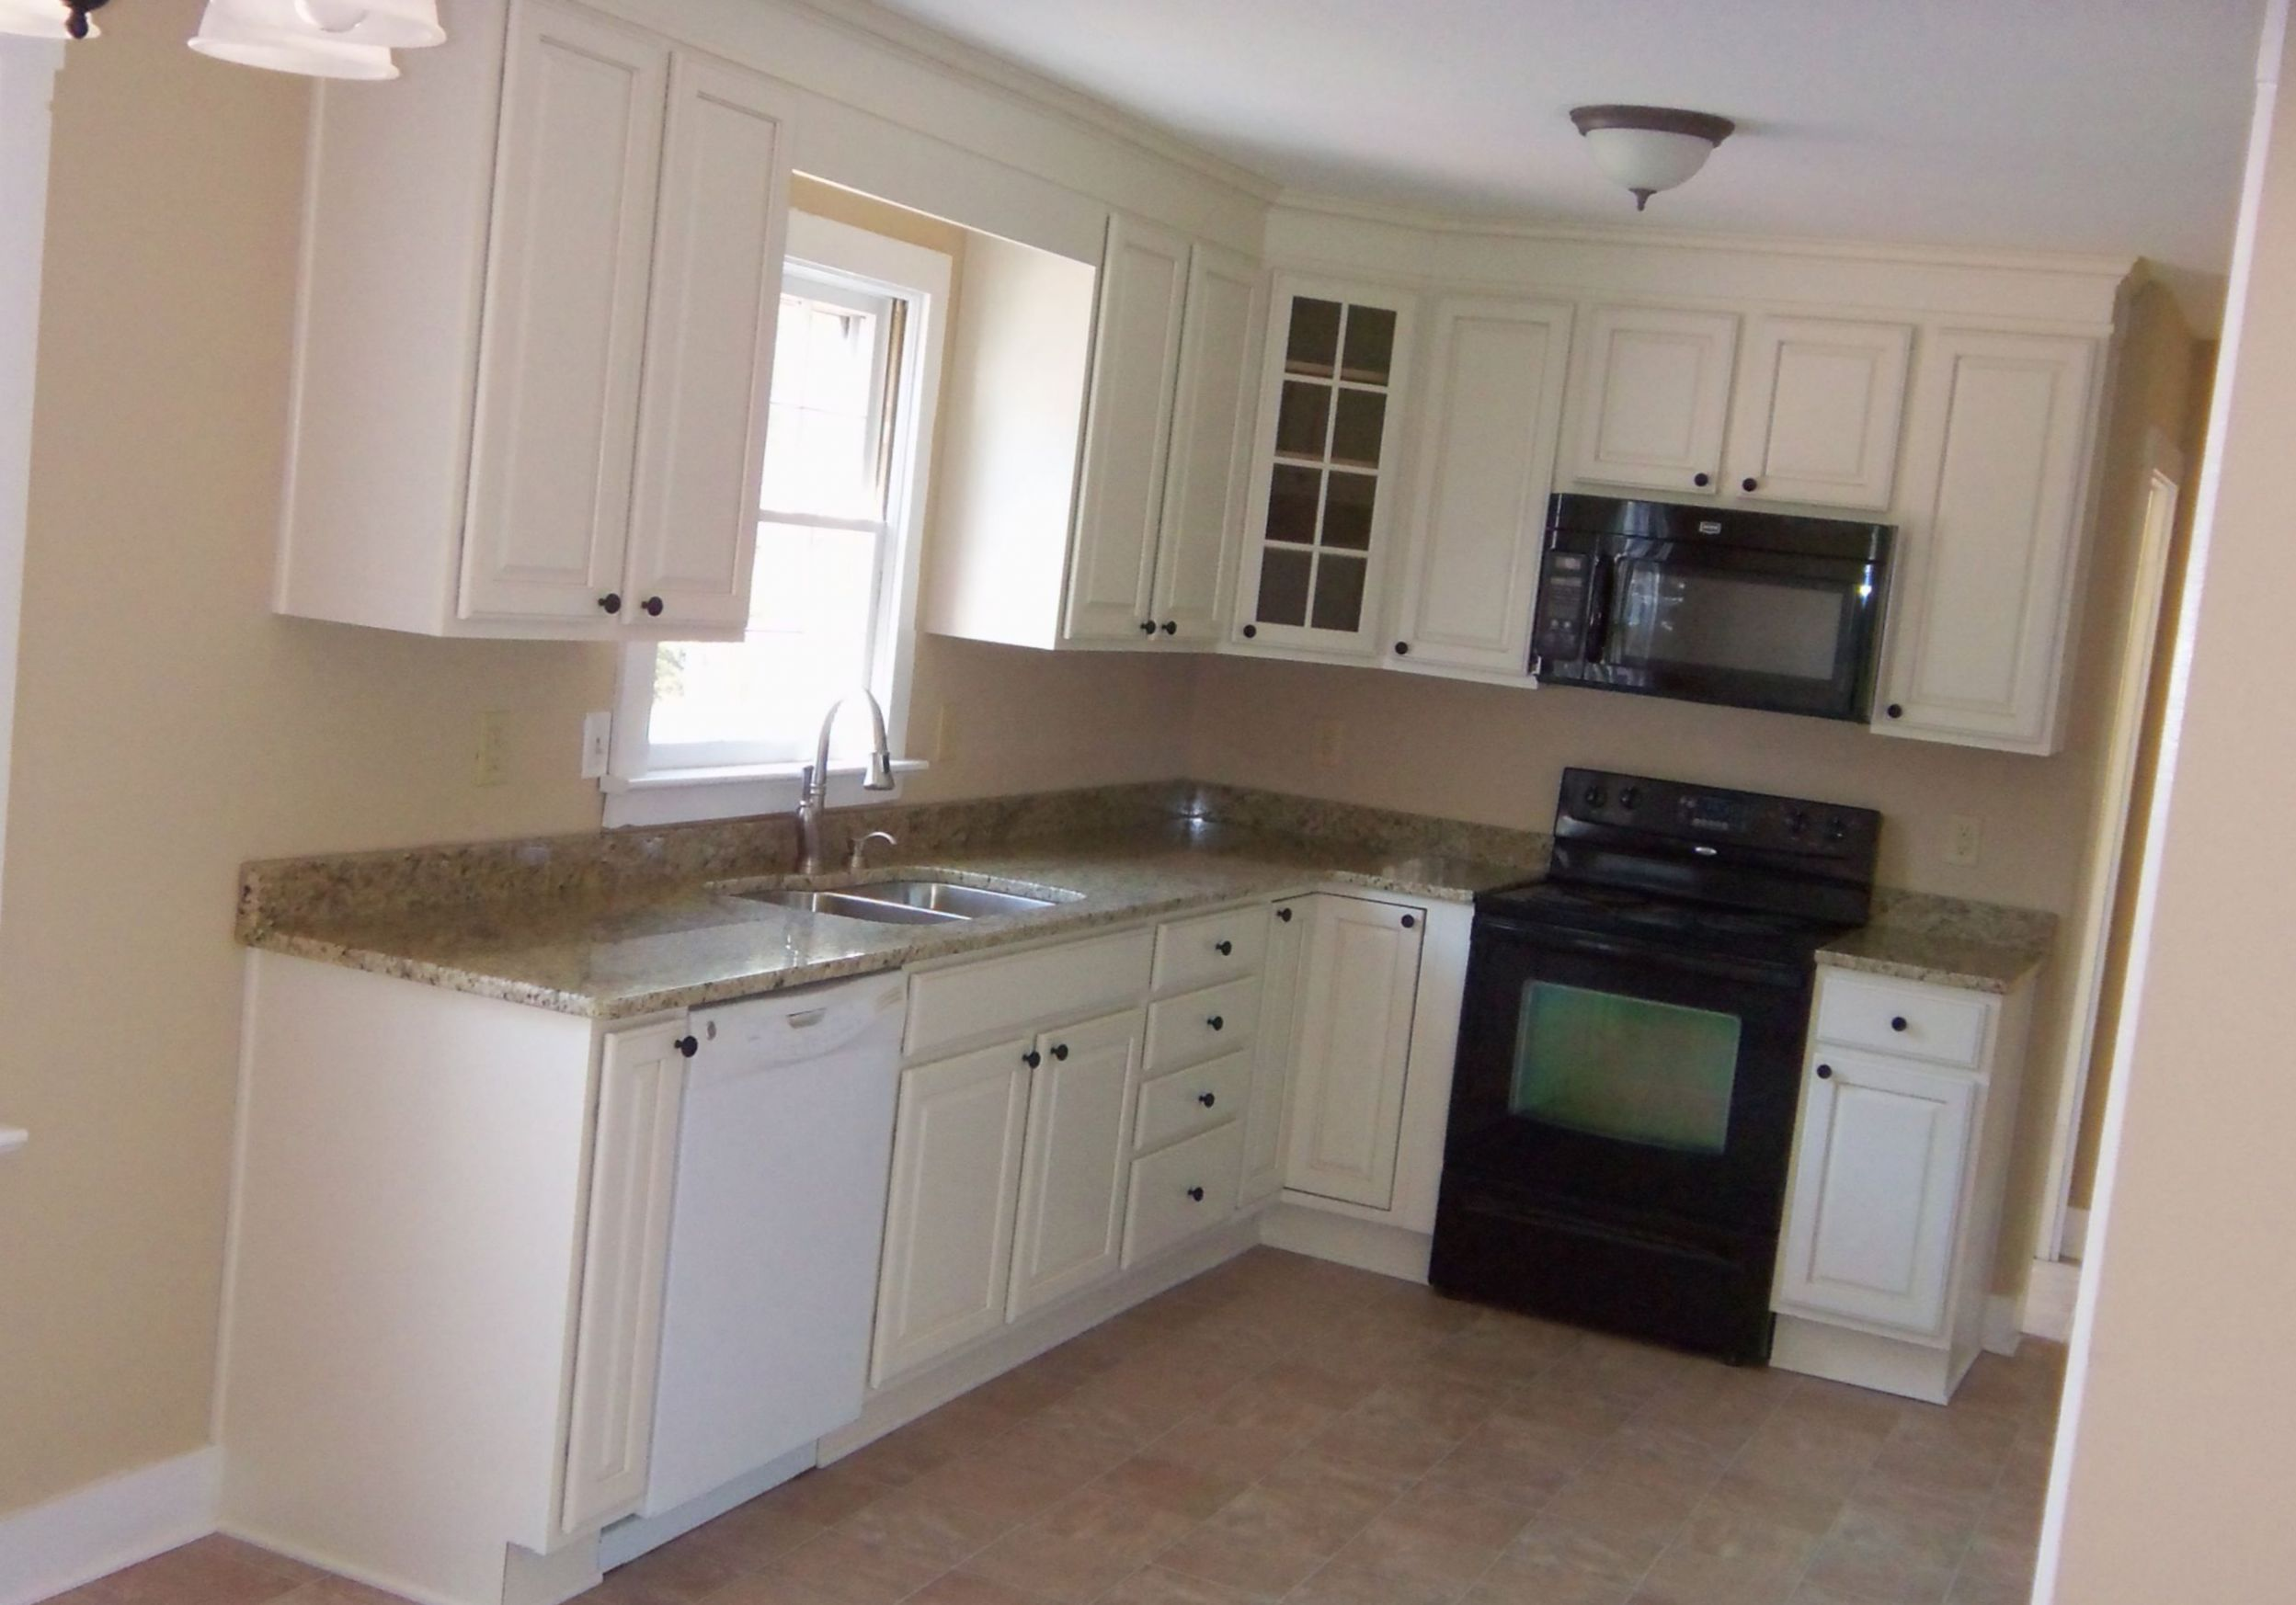 Construct Small L Shaped Kitchen Designs Layouts label Kitchen ..